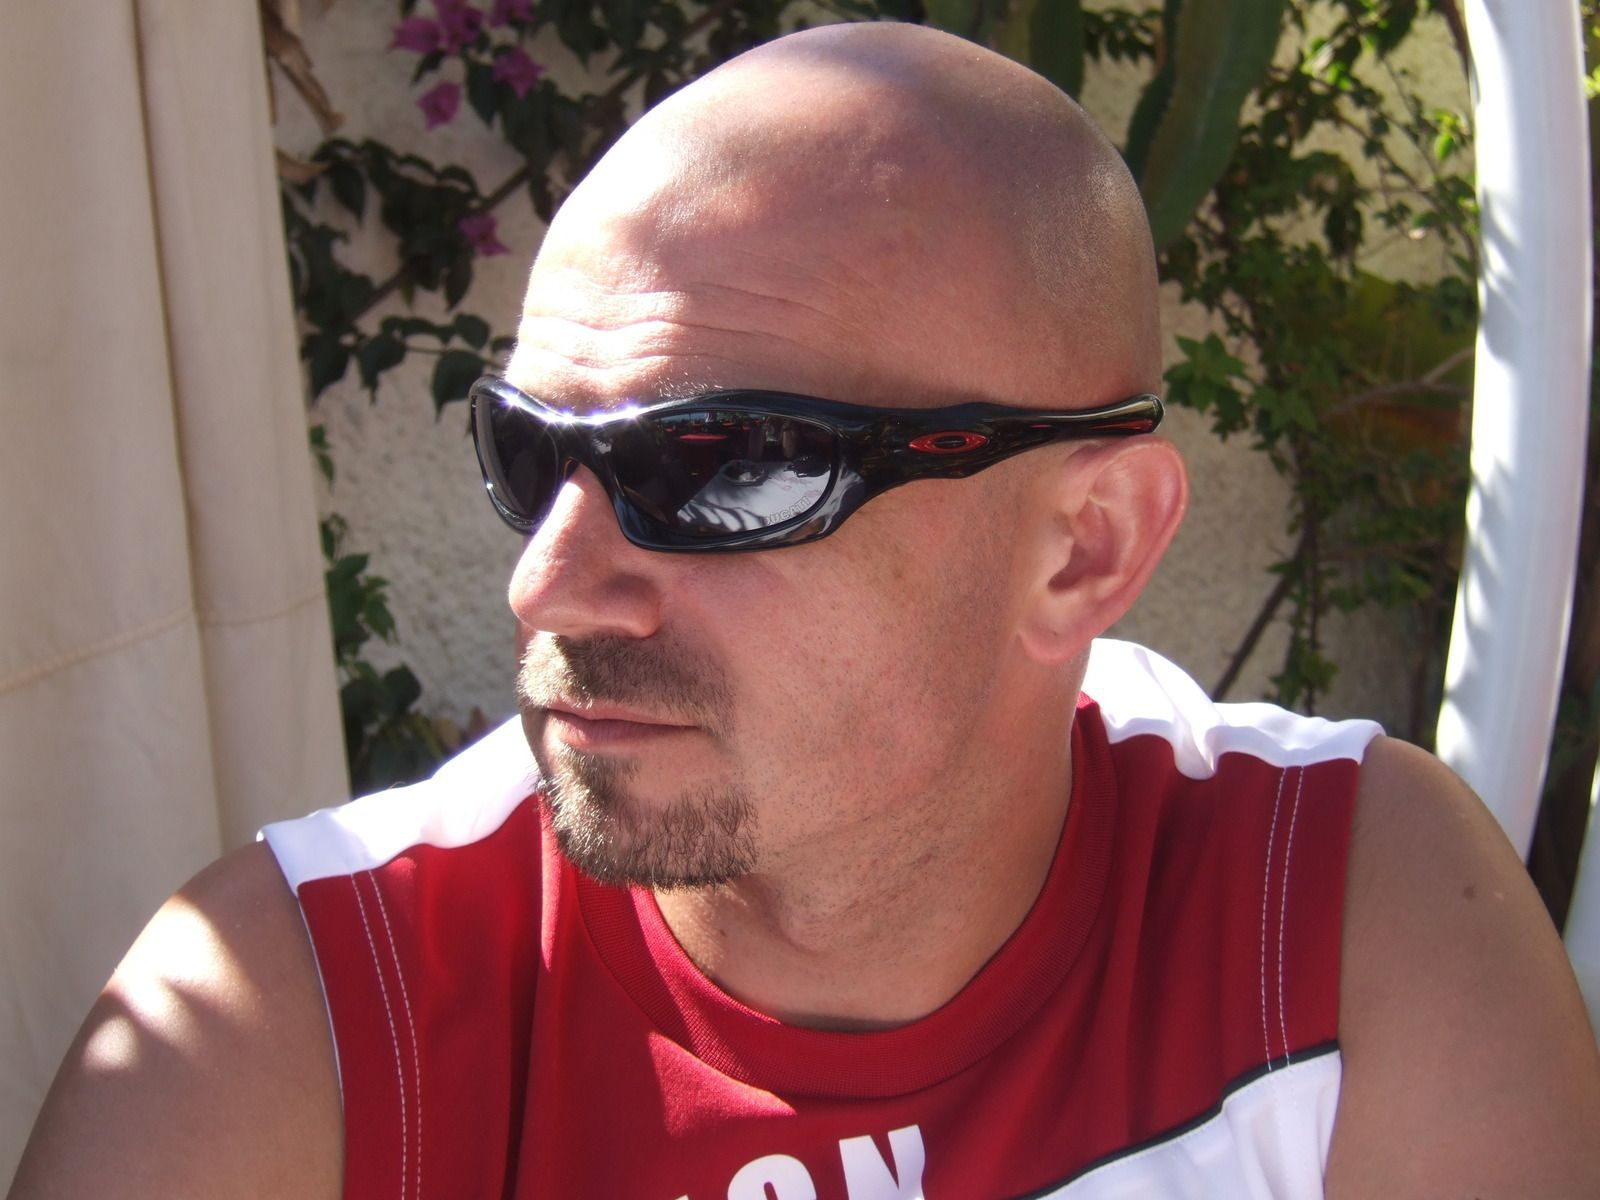 Feeling brave? Let's see some OLD pics of you wearing Oakleys. - dscf1966u.jpg